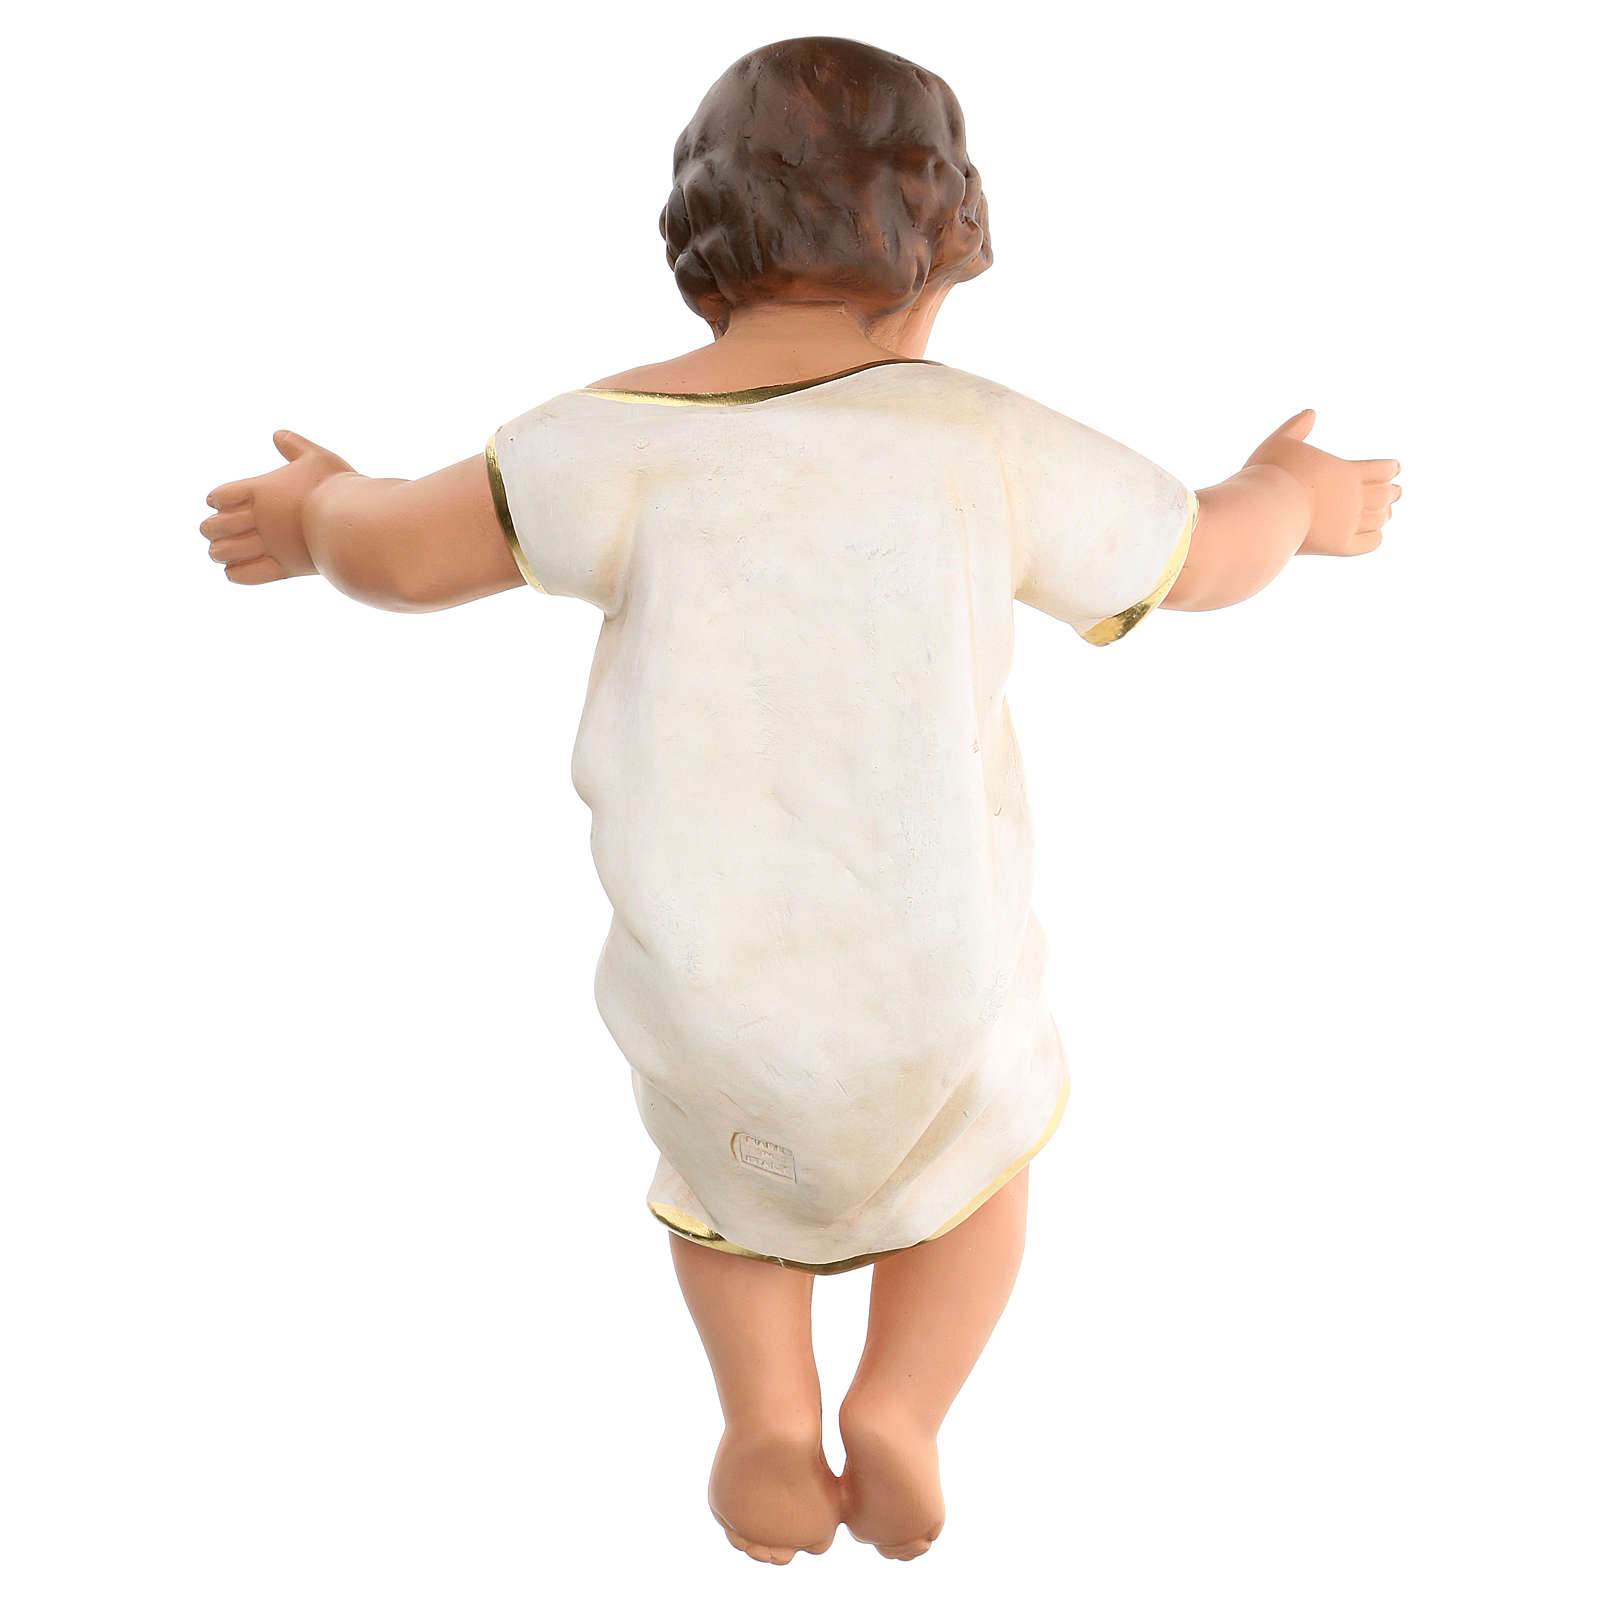 Arte Barsanti Baby Jesus 50 cm (REAL HEIGHT) in plaster with glass eyes 4